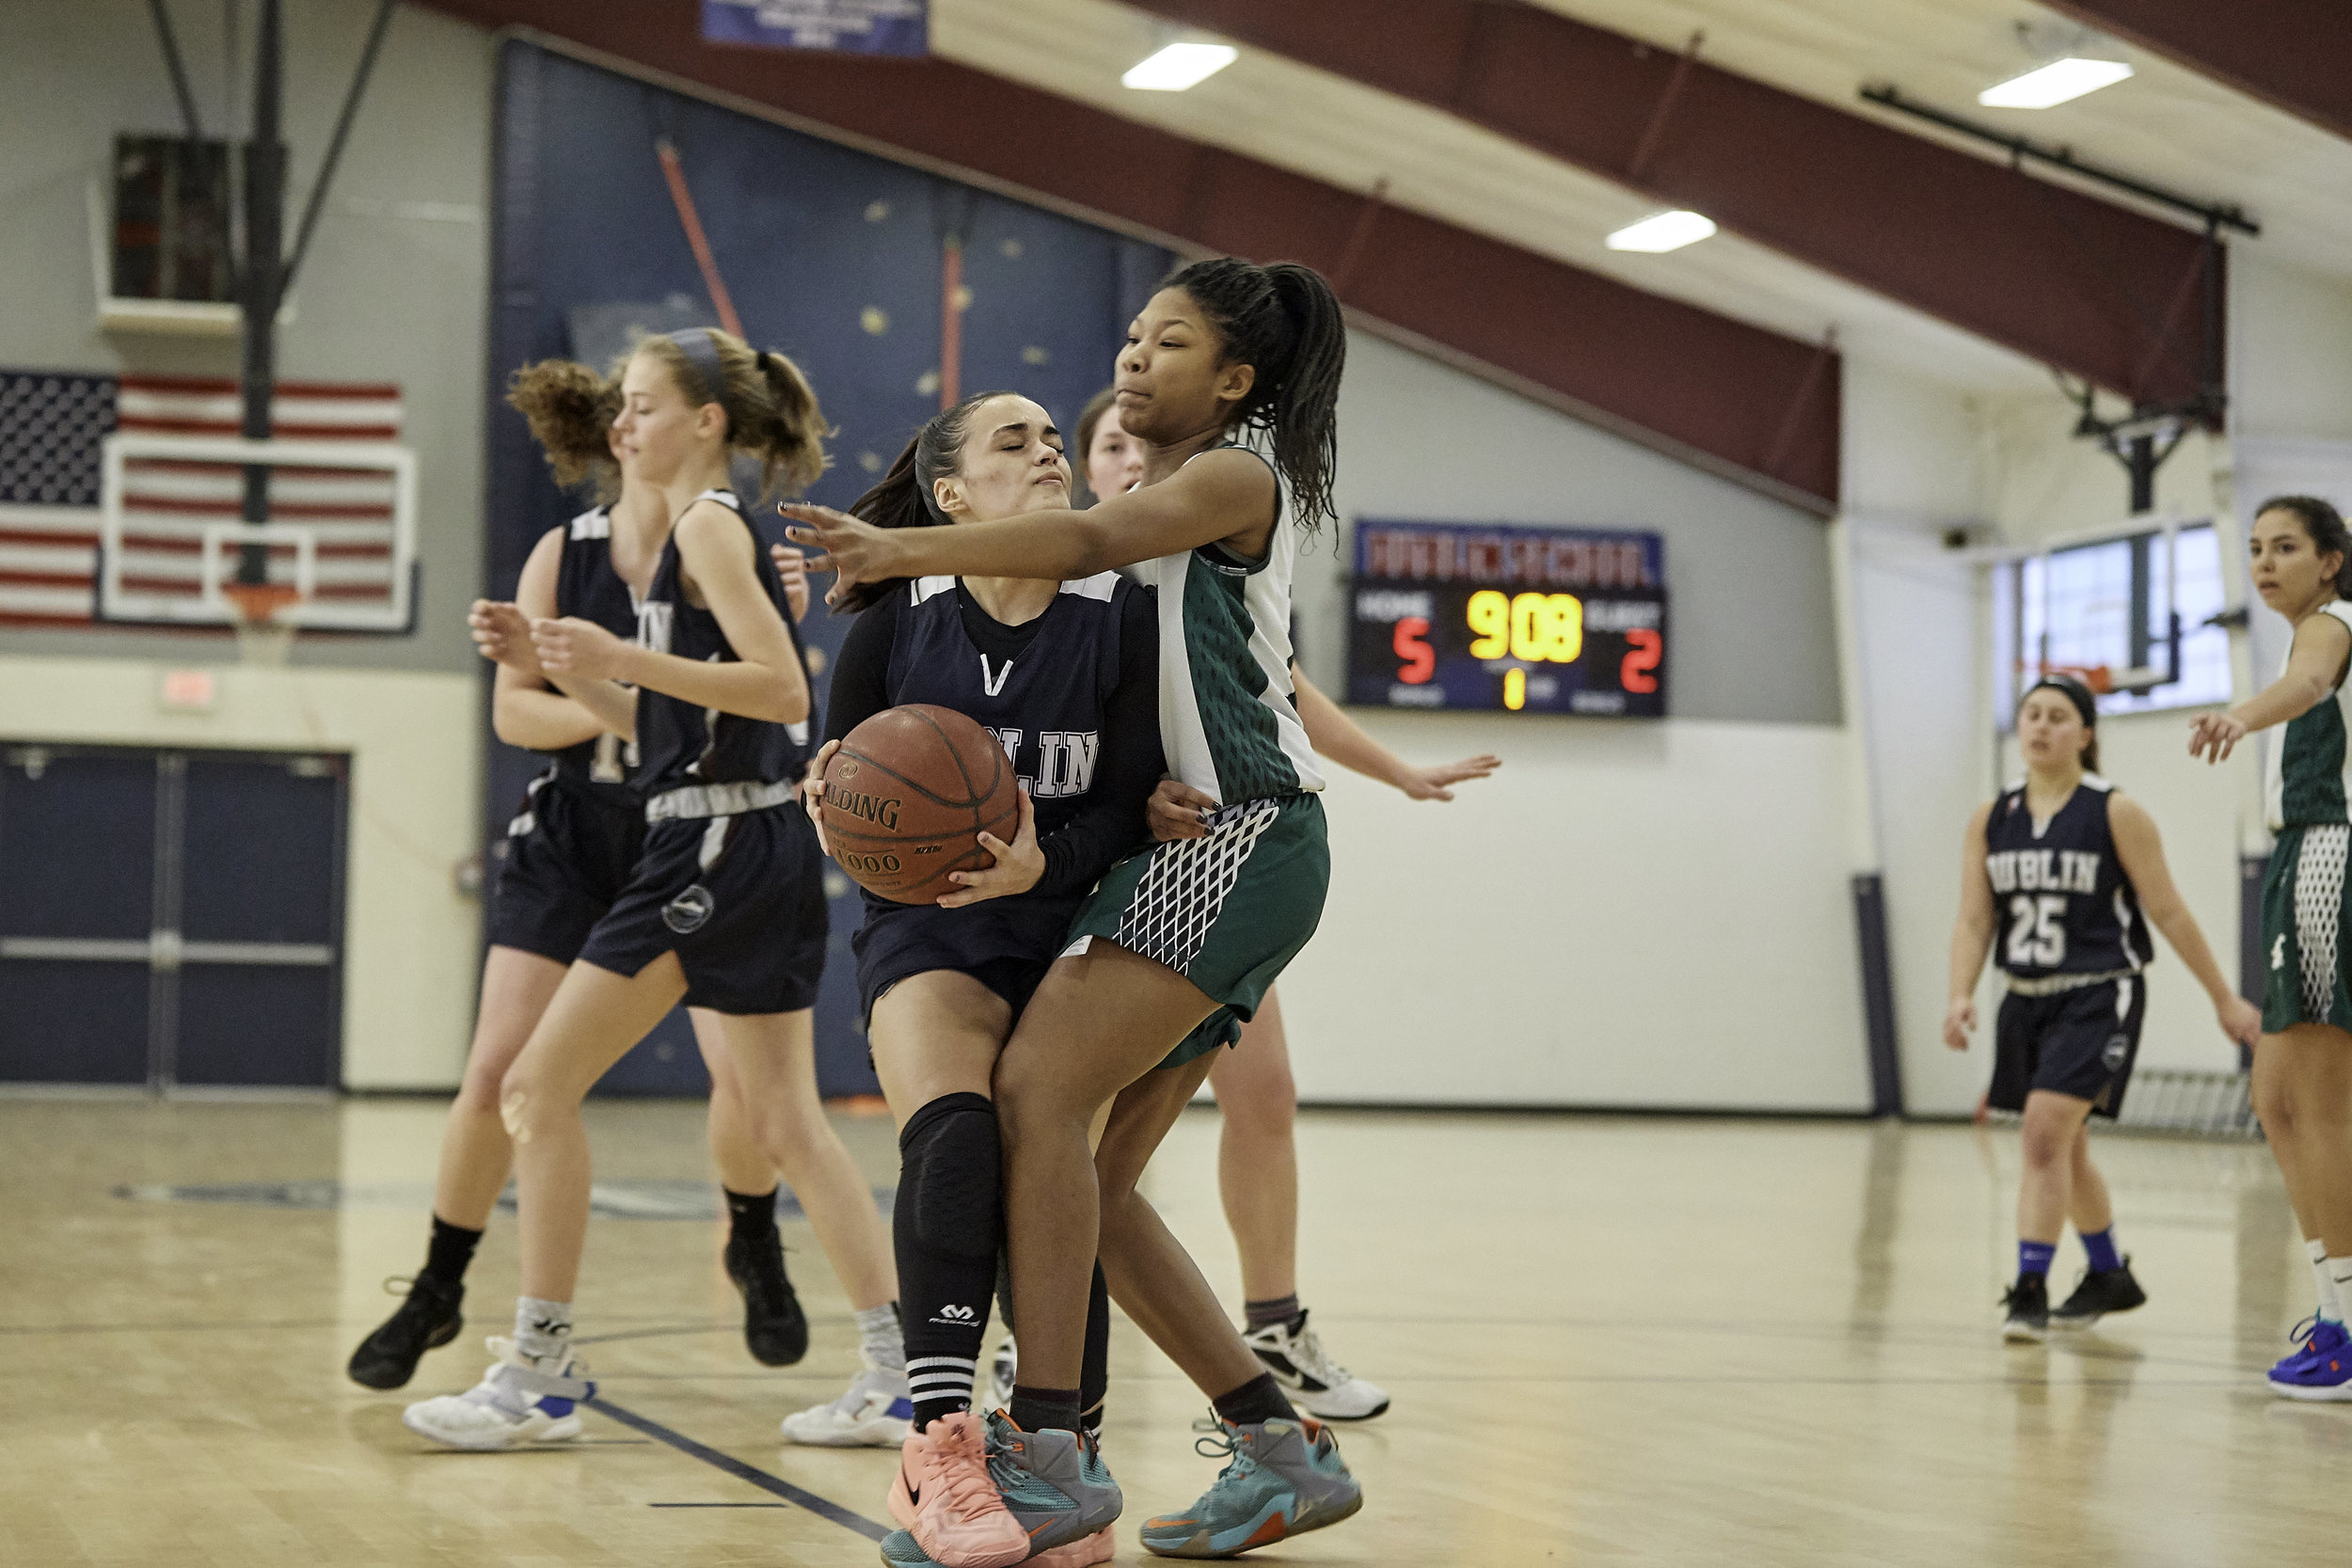 Basketball vs Putney School, February 9, 2019 - 167184.jpg